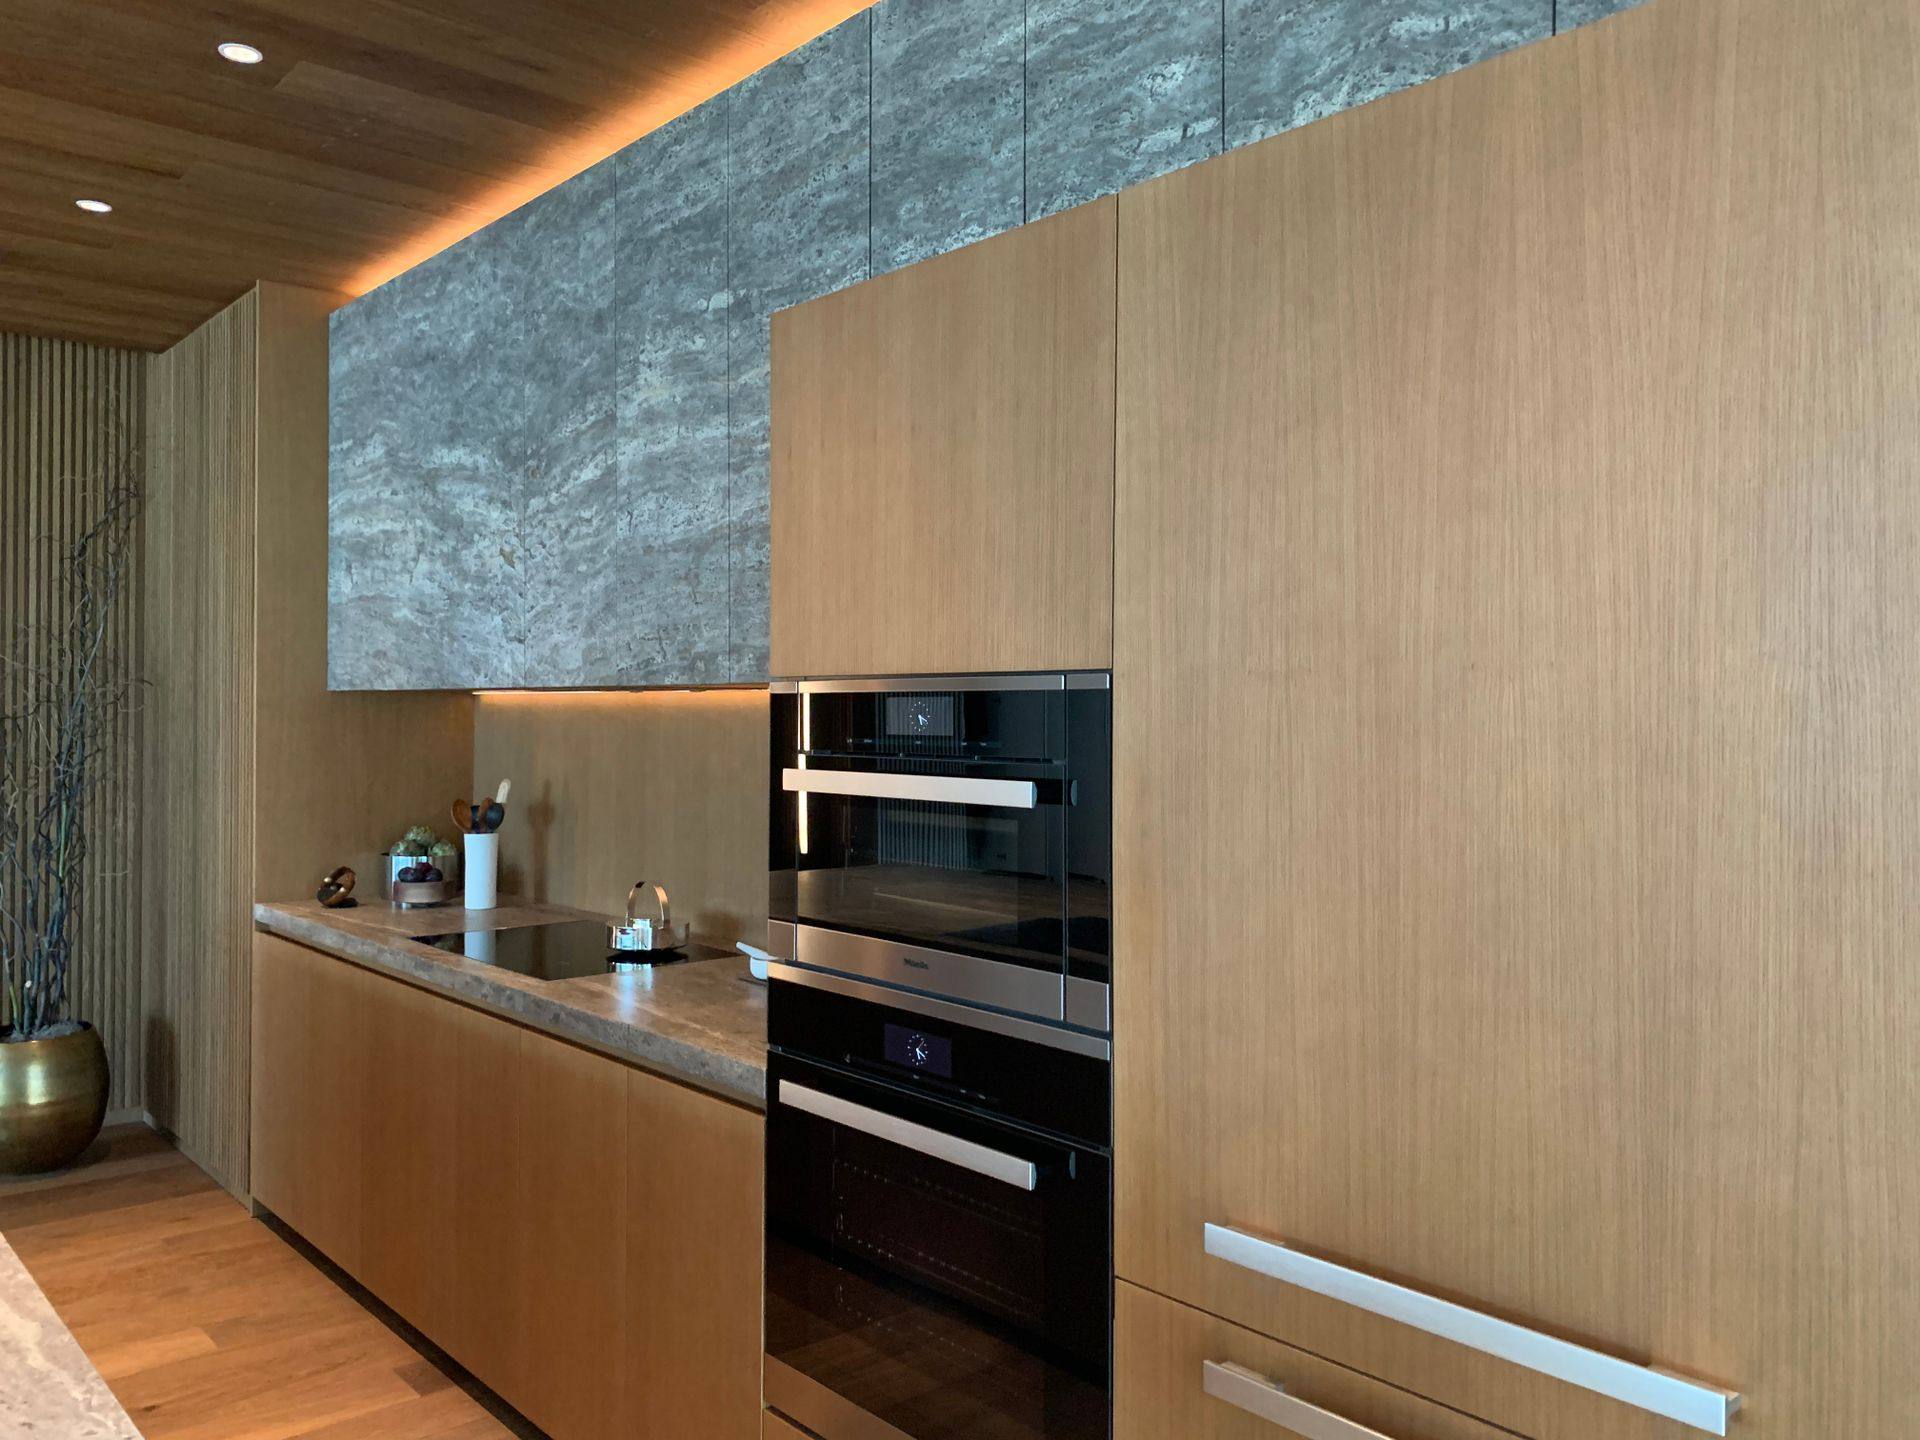 1515 dada molteni kitchen in natural with travertine upper cabinets at Fifteen Fifteen (1515 Alberni Street, Coal Harbour, Vancouver West)